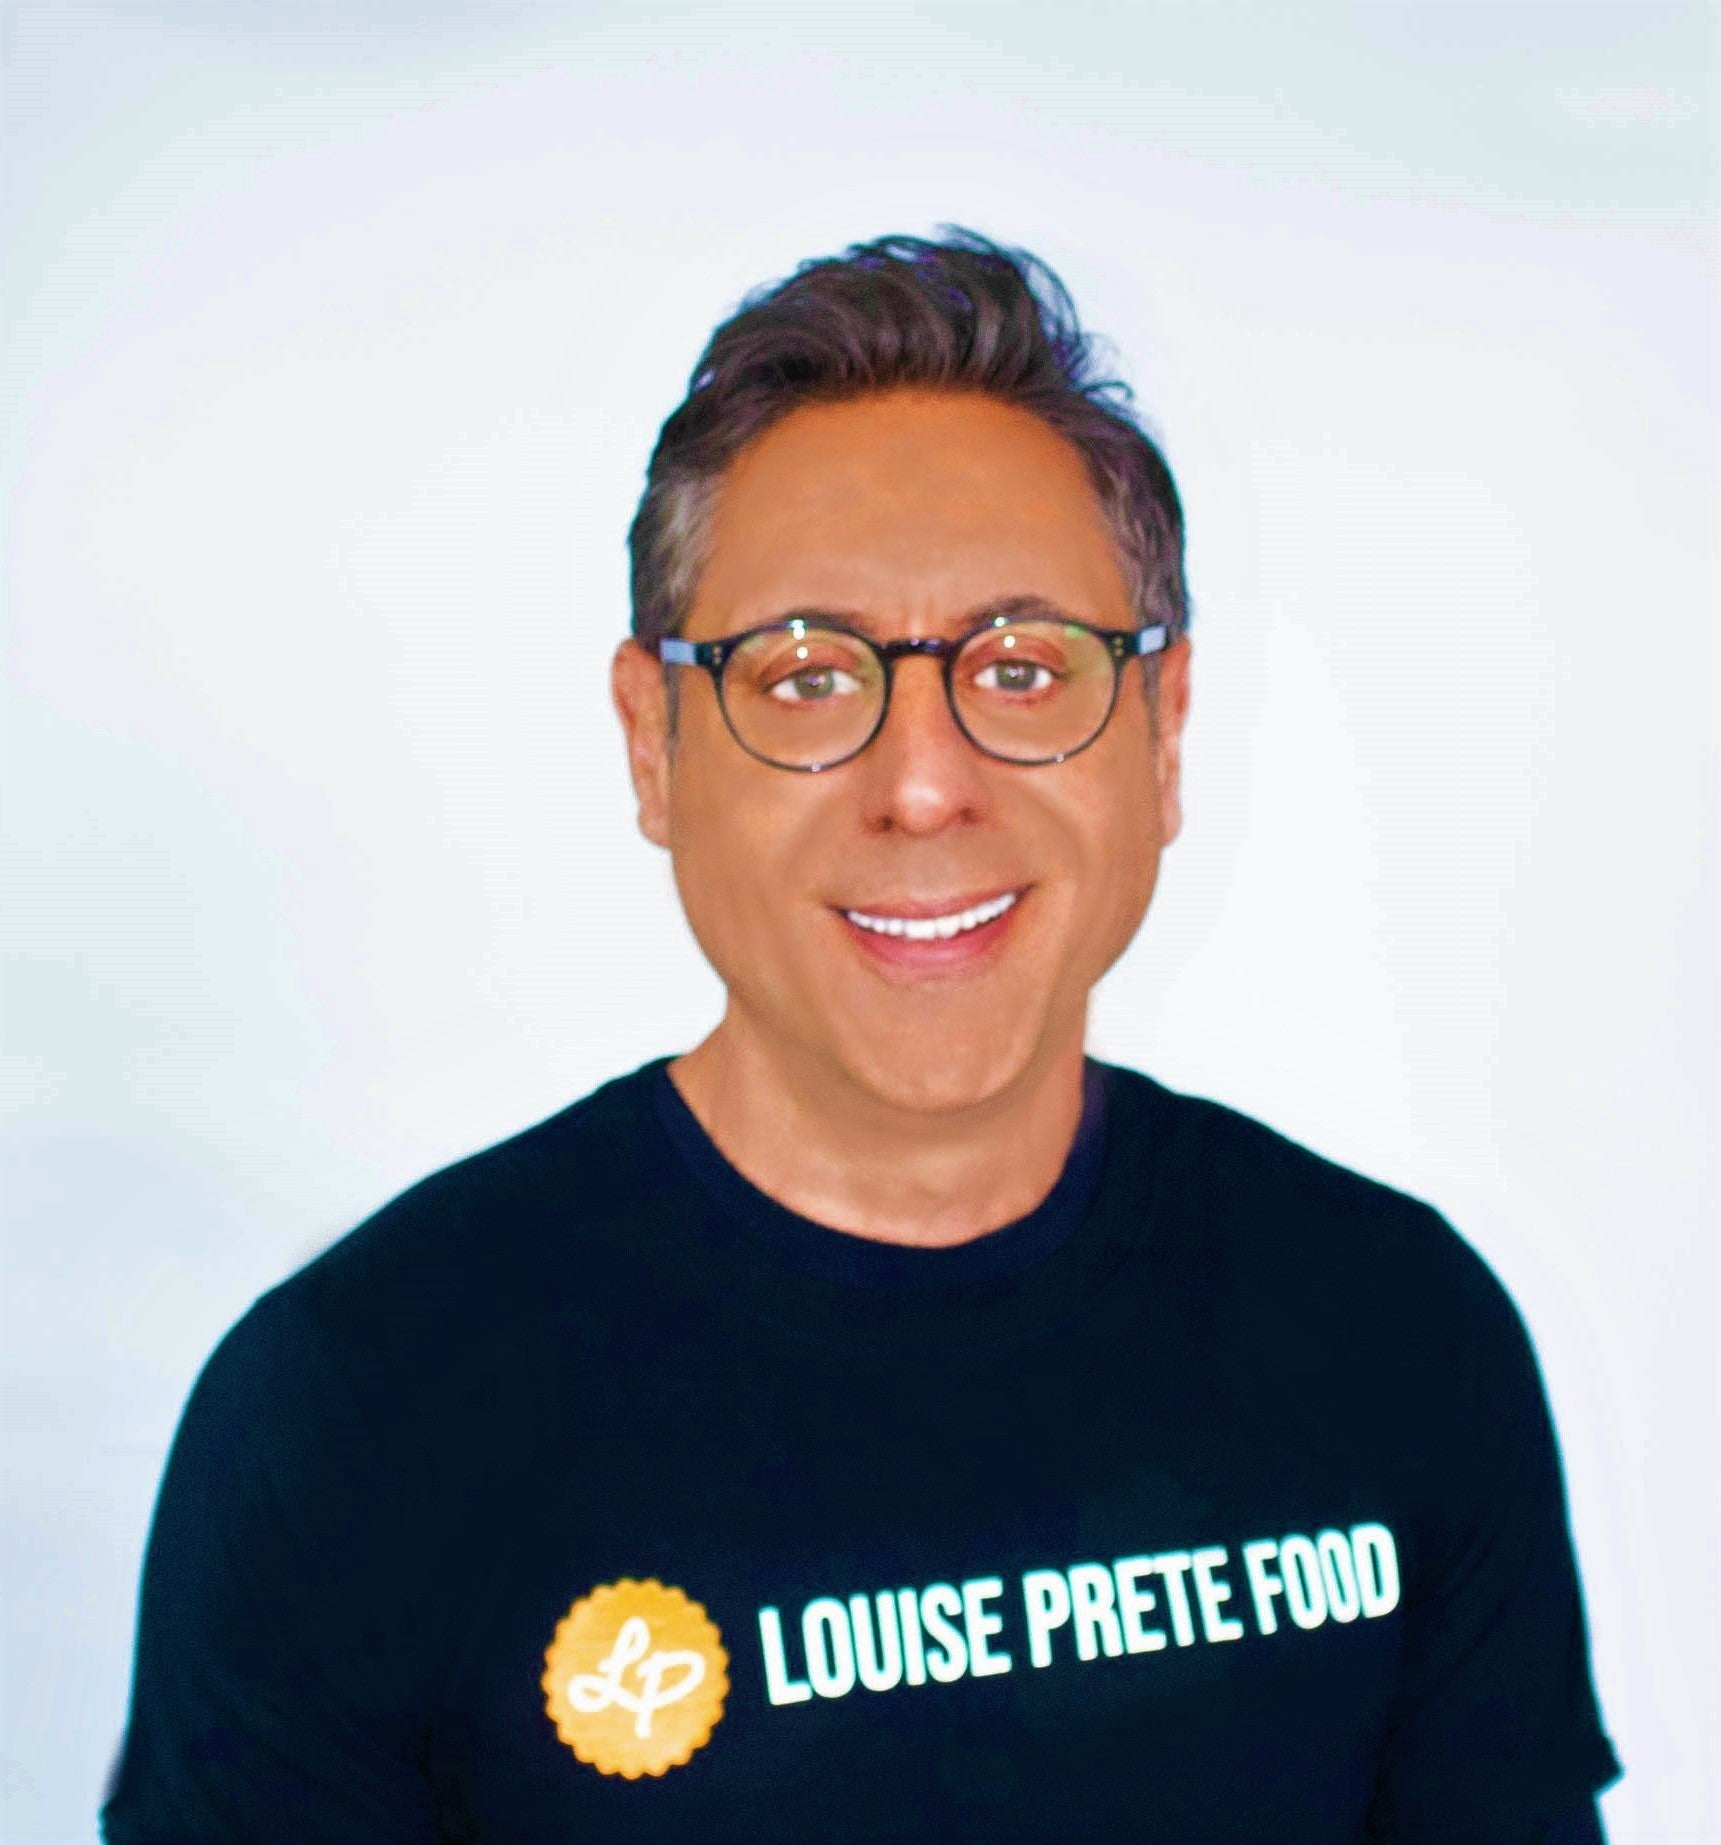 Michael Malleau Founder & CEO of Louise Prete Food